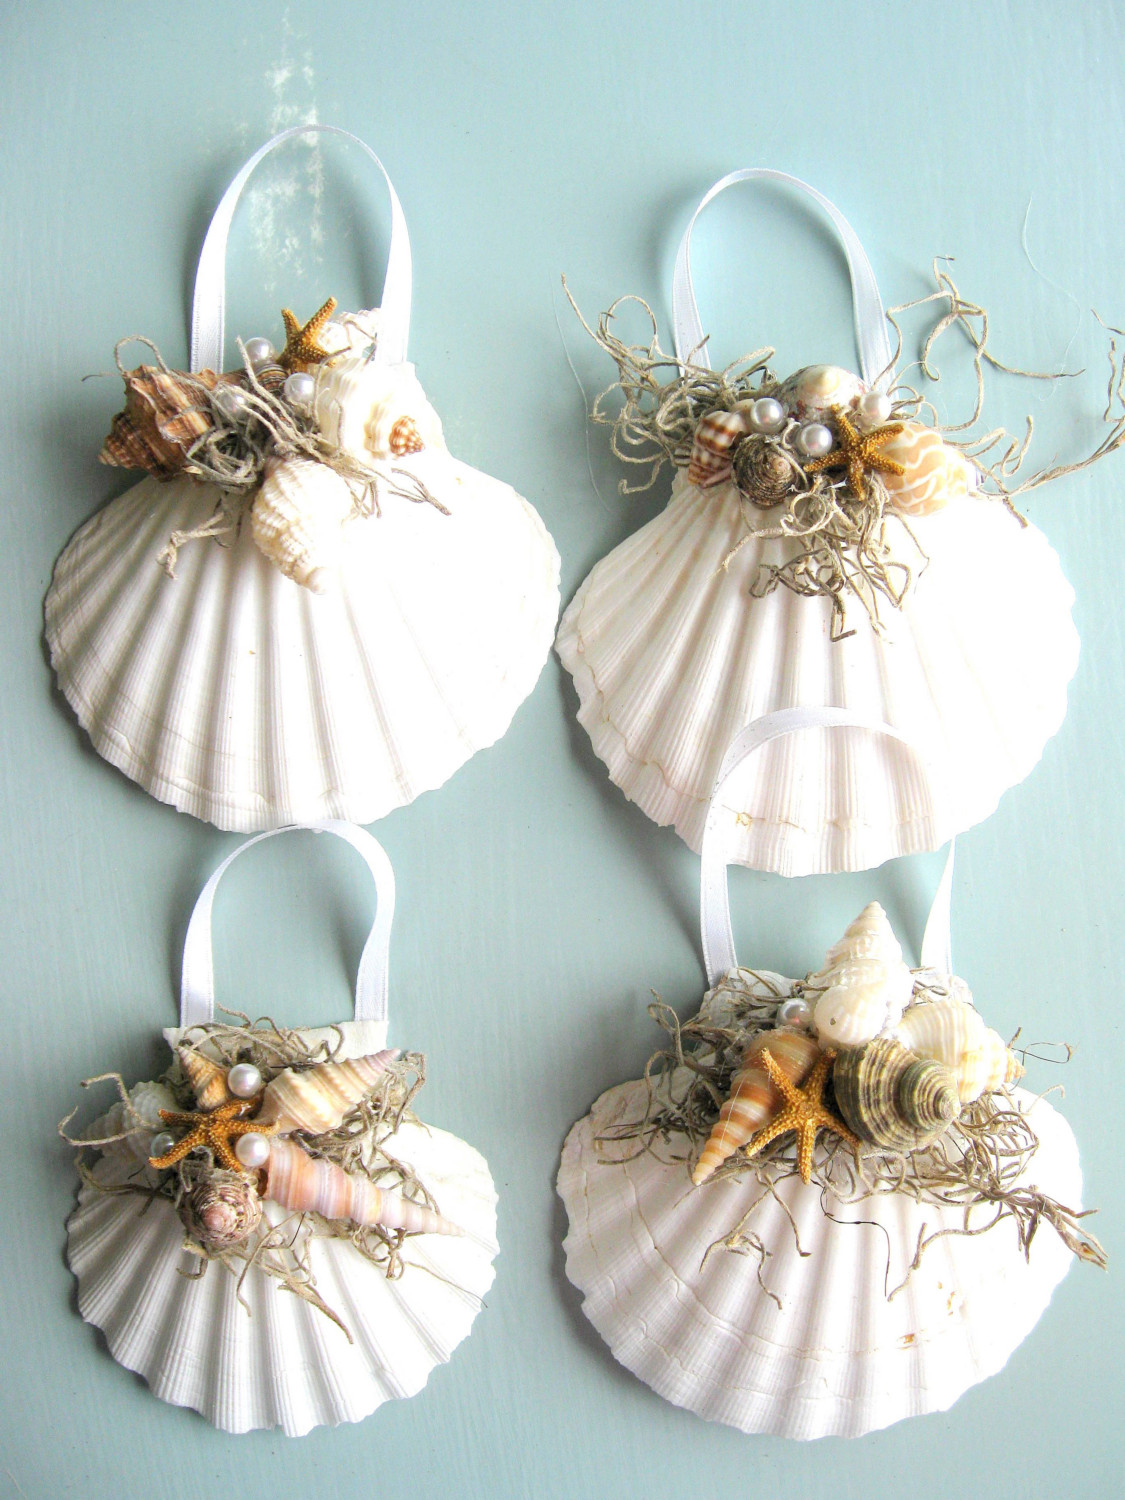 Christmas seashell ornaments interior designing ideas for Ornament ideas